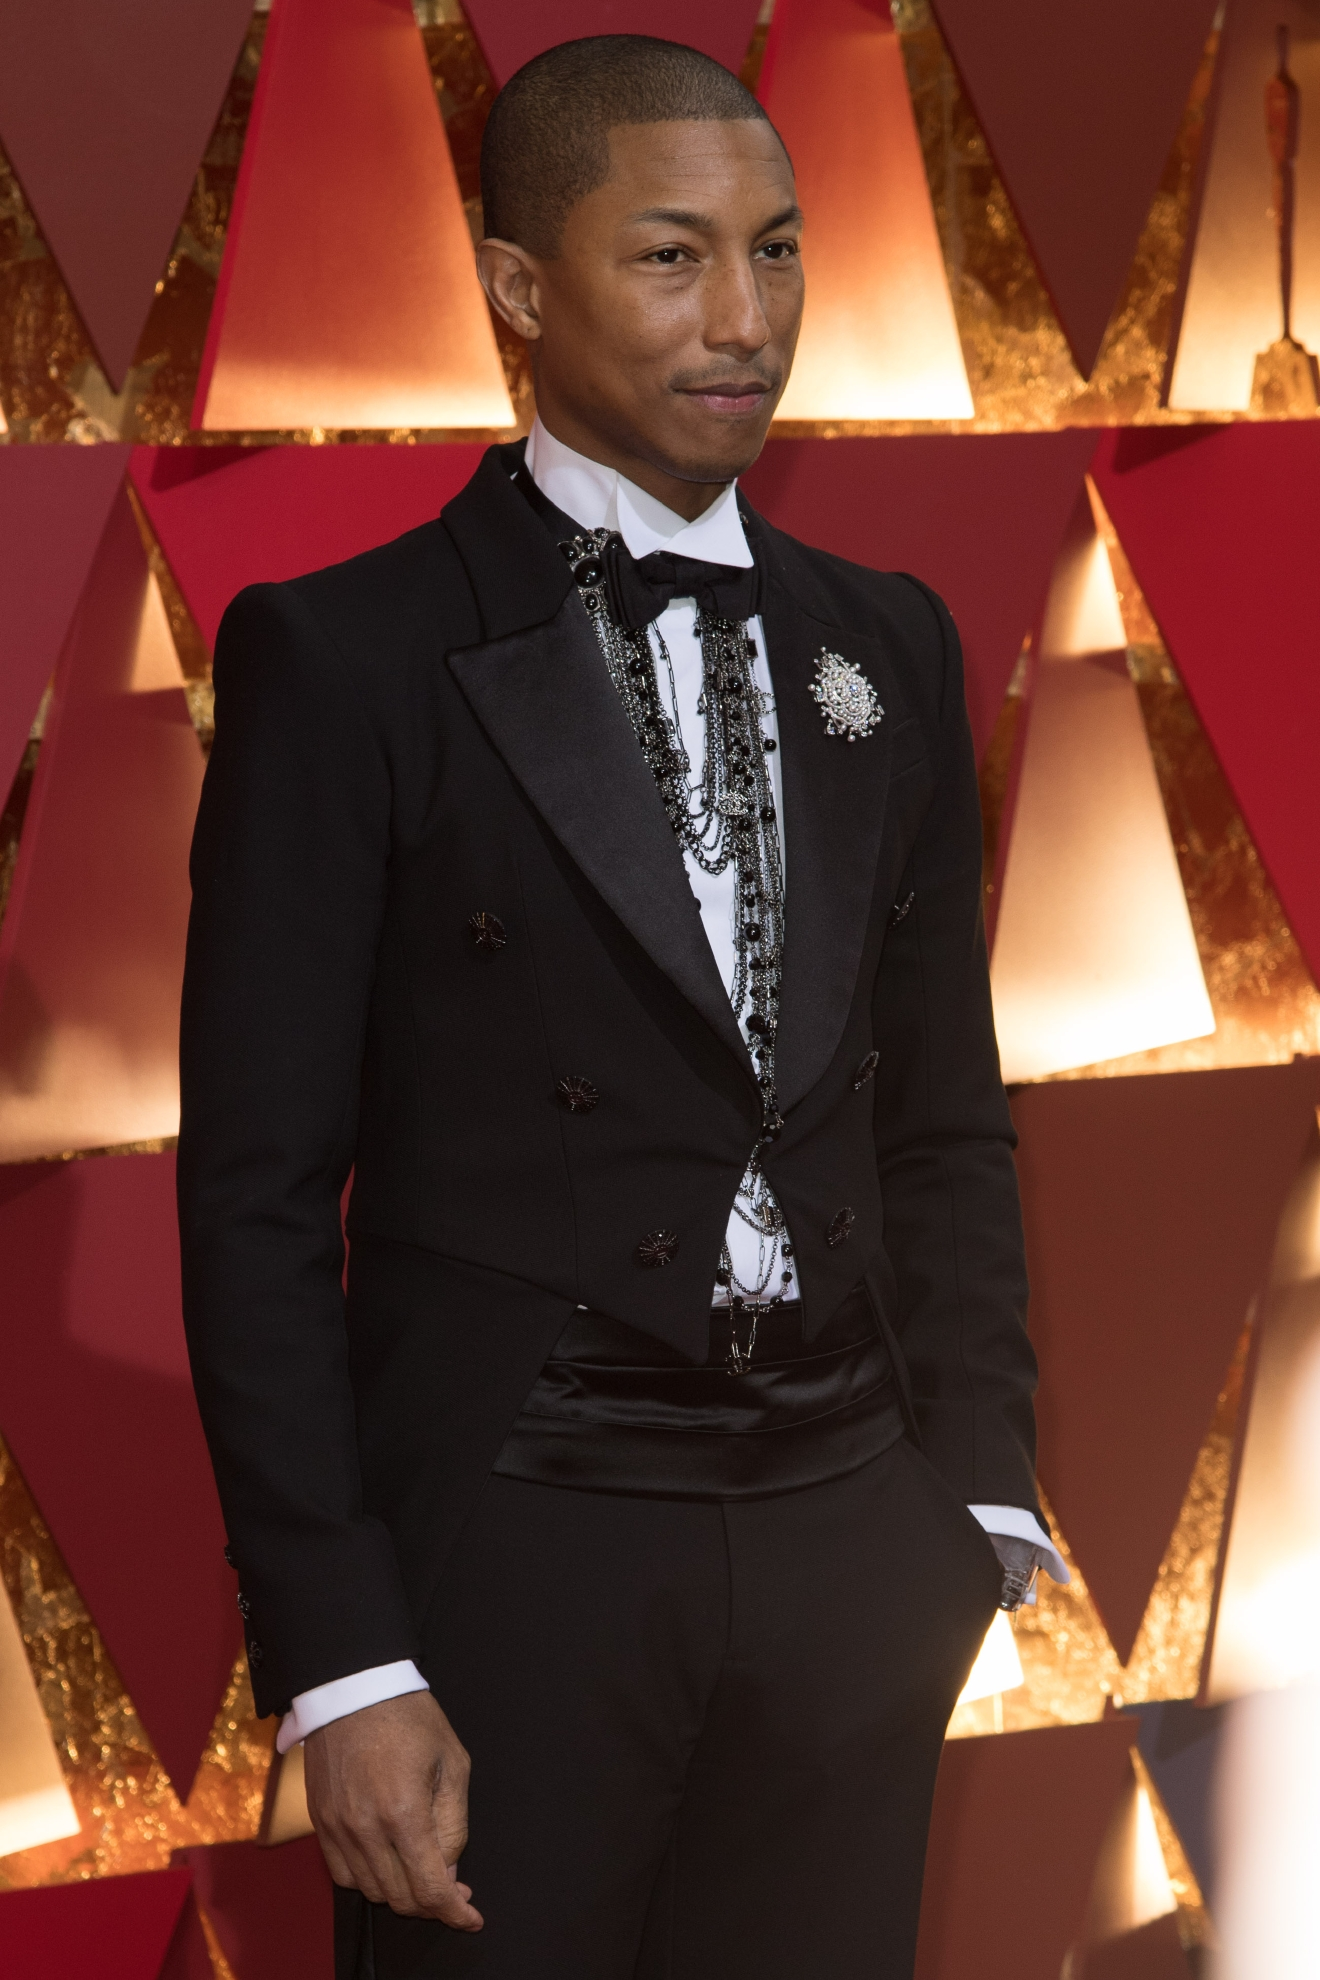 #38: Pharrell Williams. We can't  blame him, he's Pharrell! And these layered necklaces he has on are honestly better than that hat, in our opinion. But still... (Image: AMPAS)